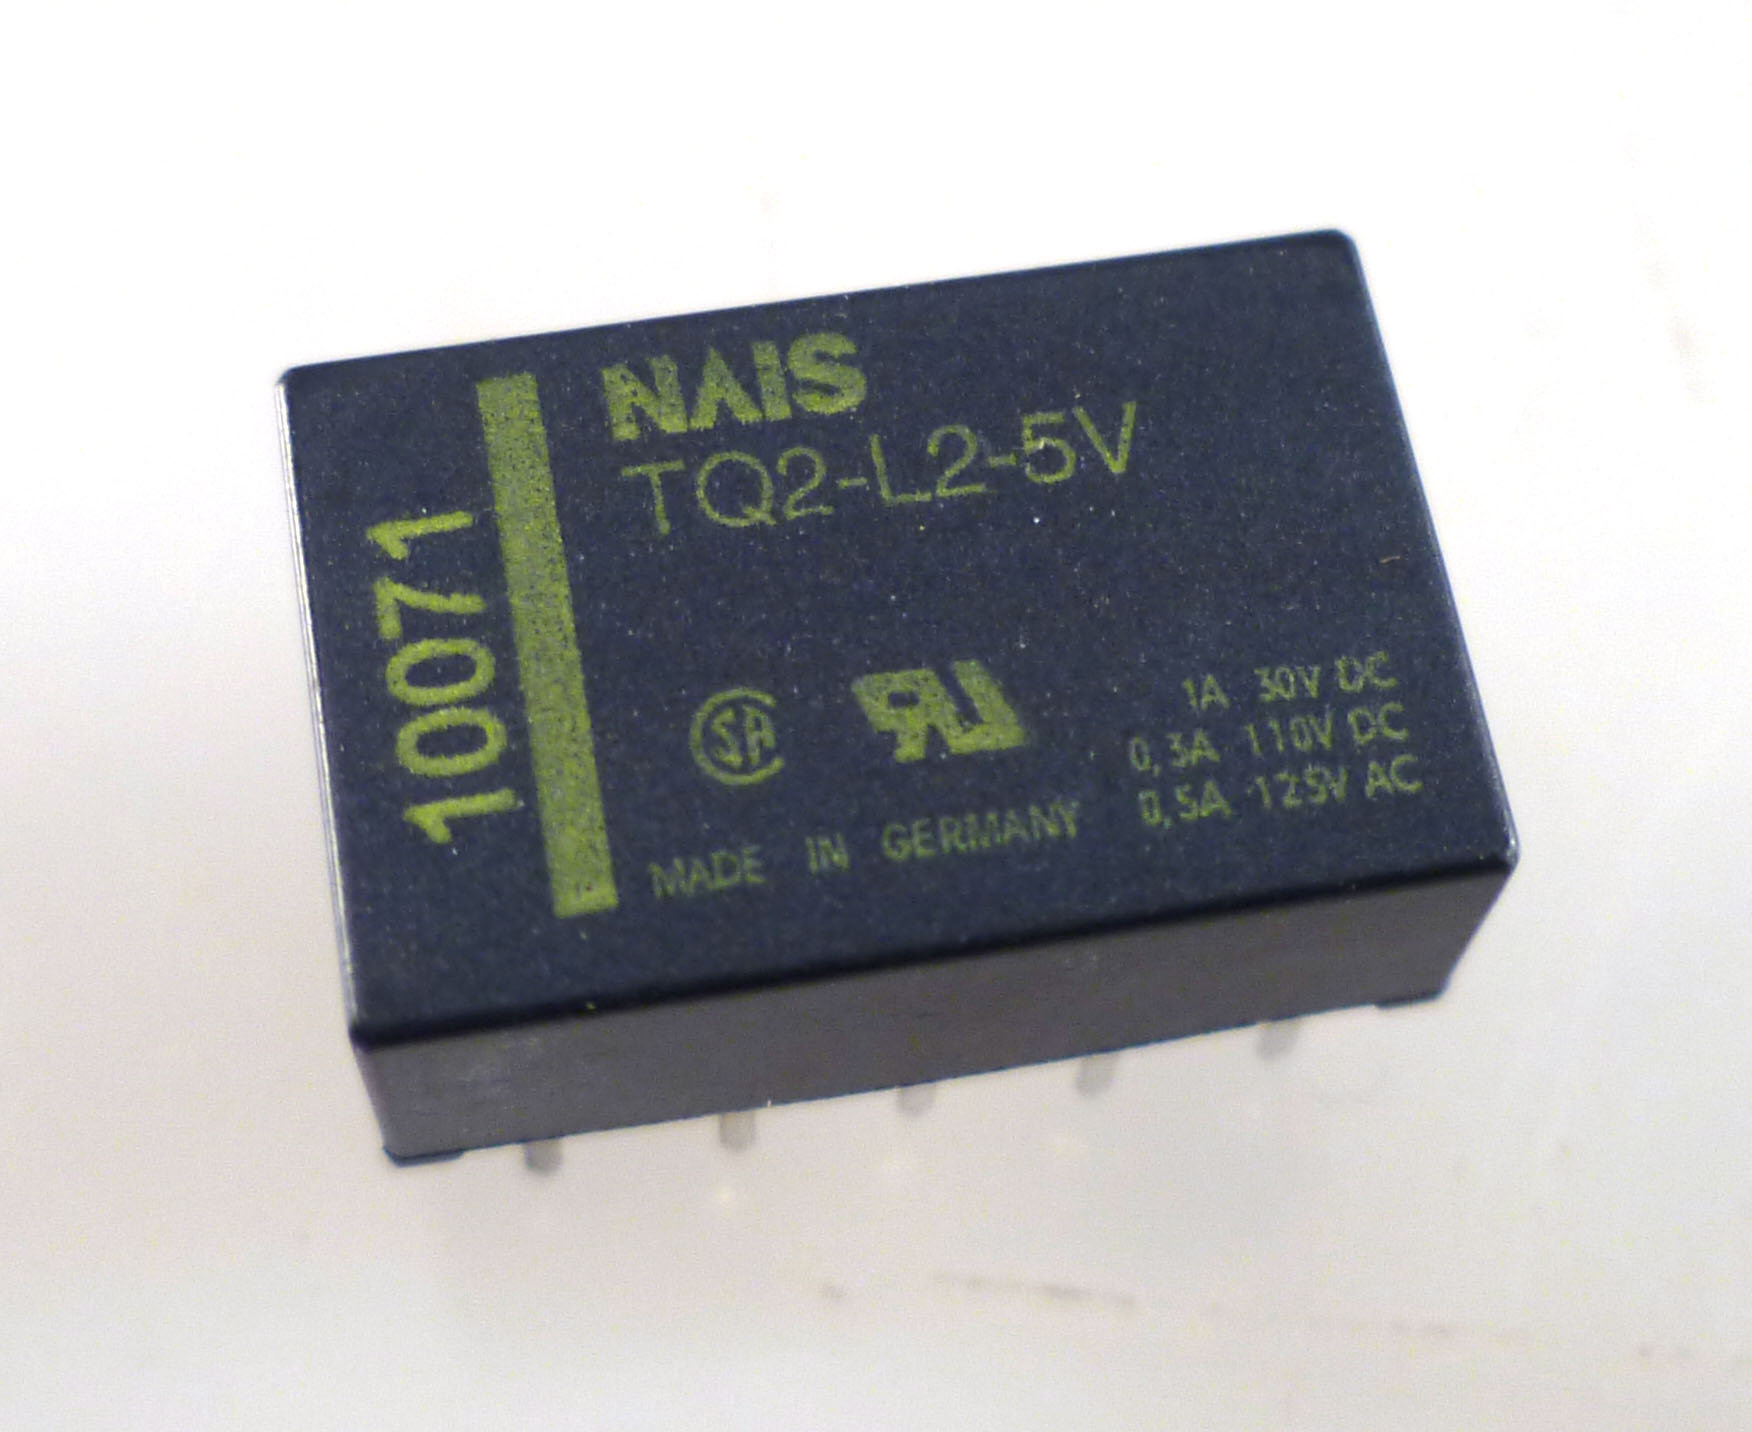 Nais Tq2 L2 5v 2 Coil Latching Pcb Signal Relay Low Profile Dpdt 12vdc Om0285a